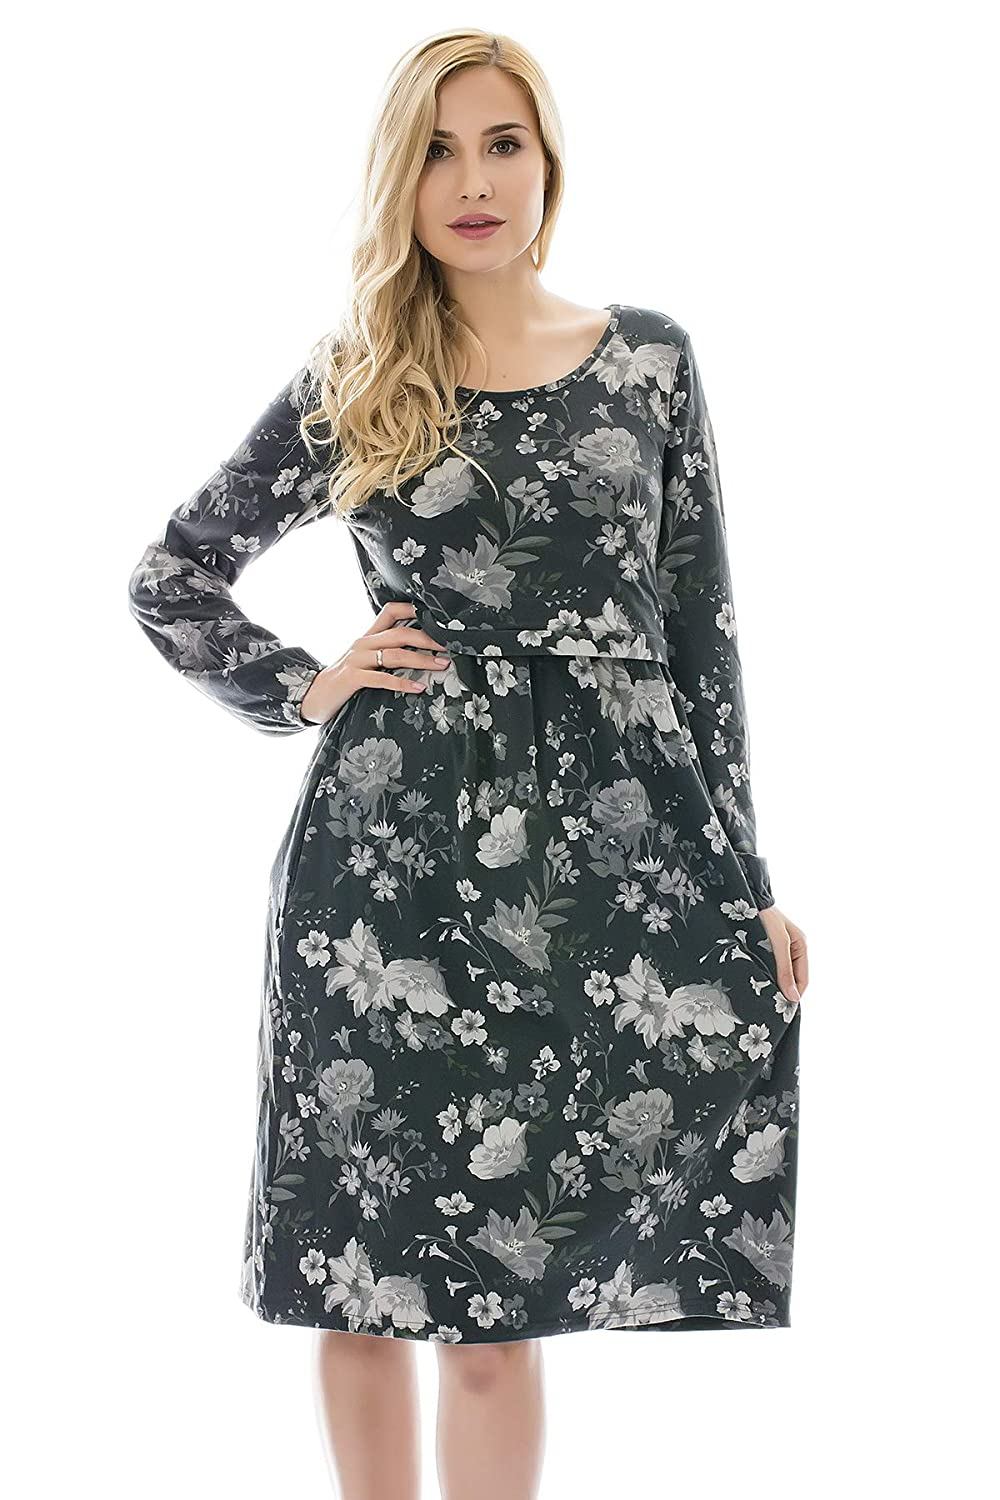 Bearsland DRESS B07JLJS6W7 Large|Greenflower Greenflower Large